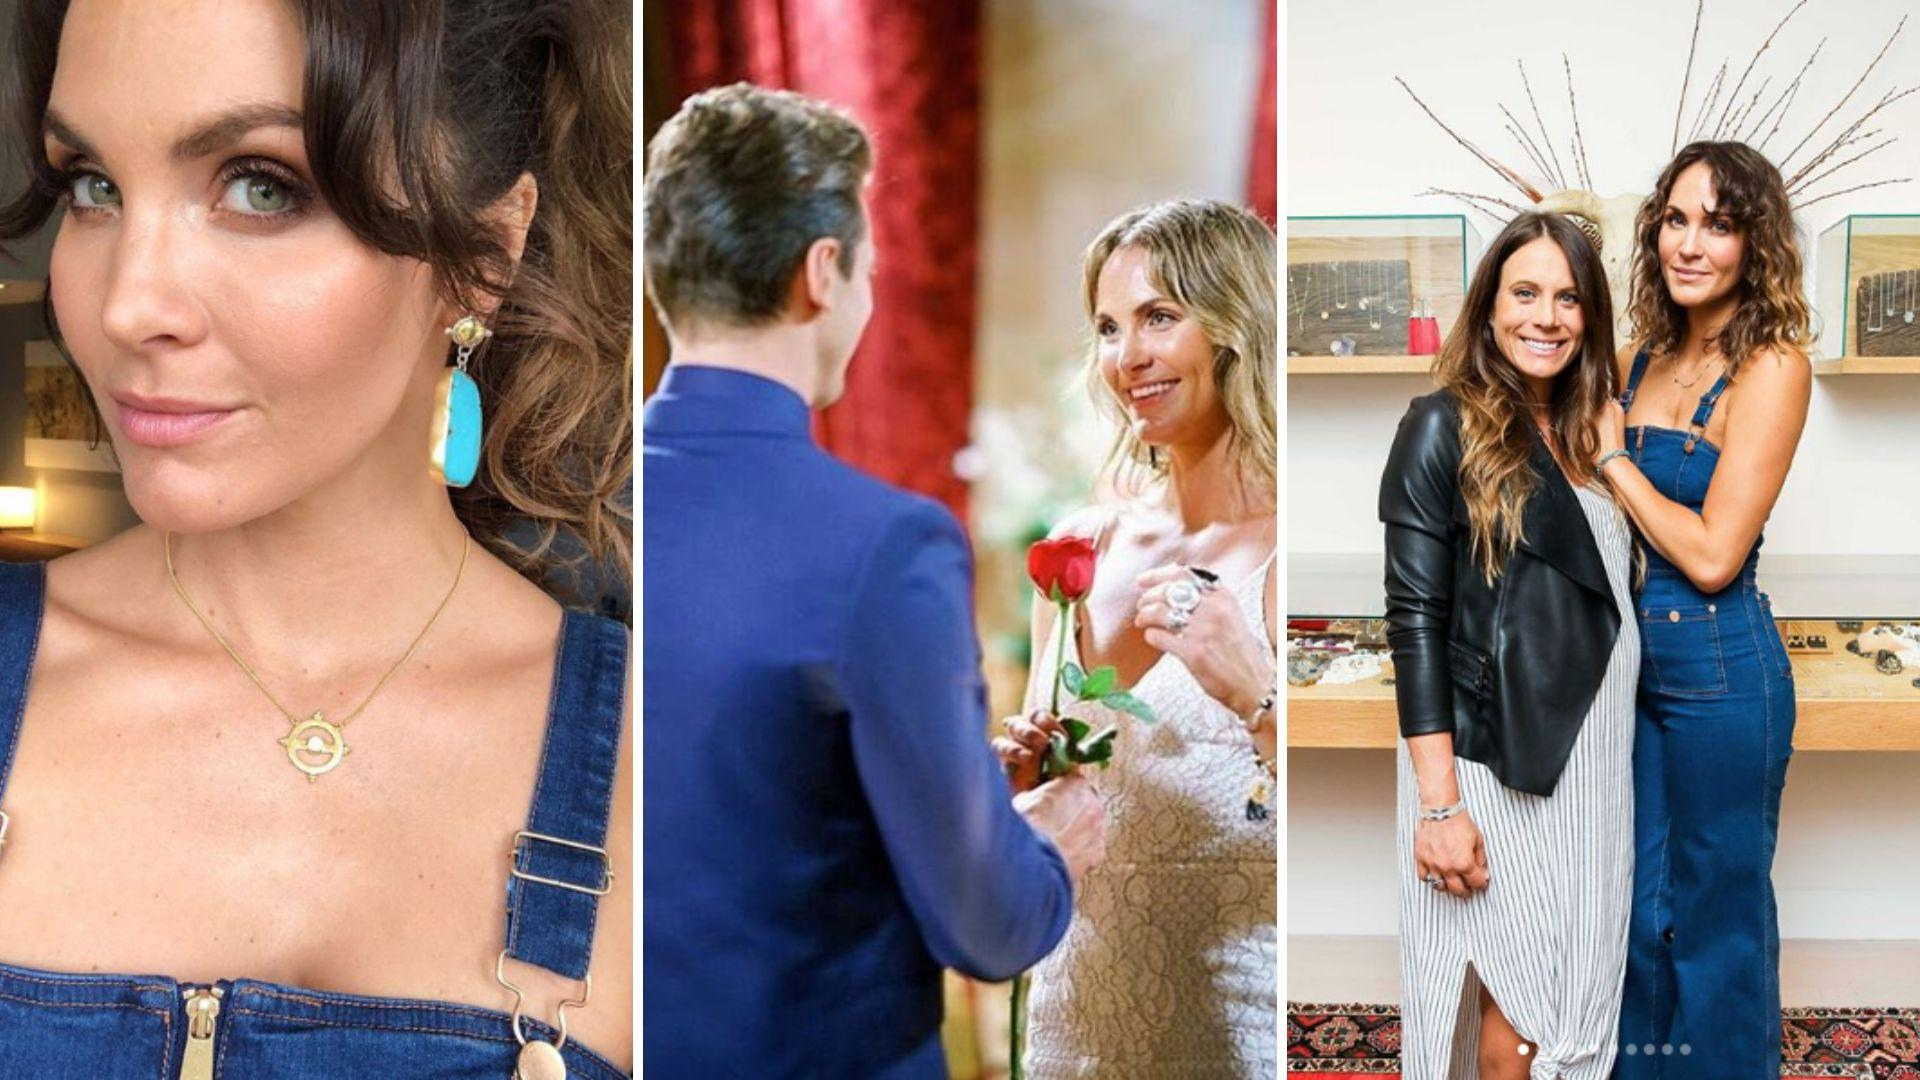 From weekend hobby to flagship store: How The Bachelor's Laura Byrne did it